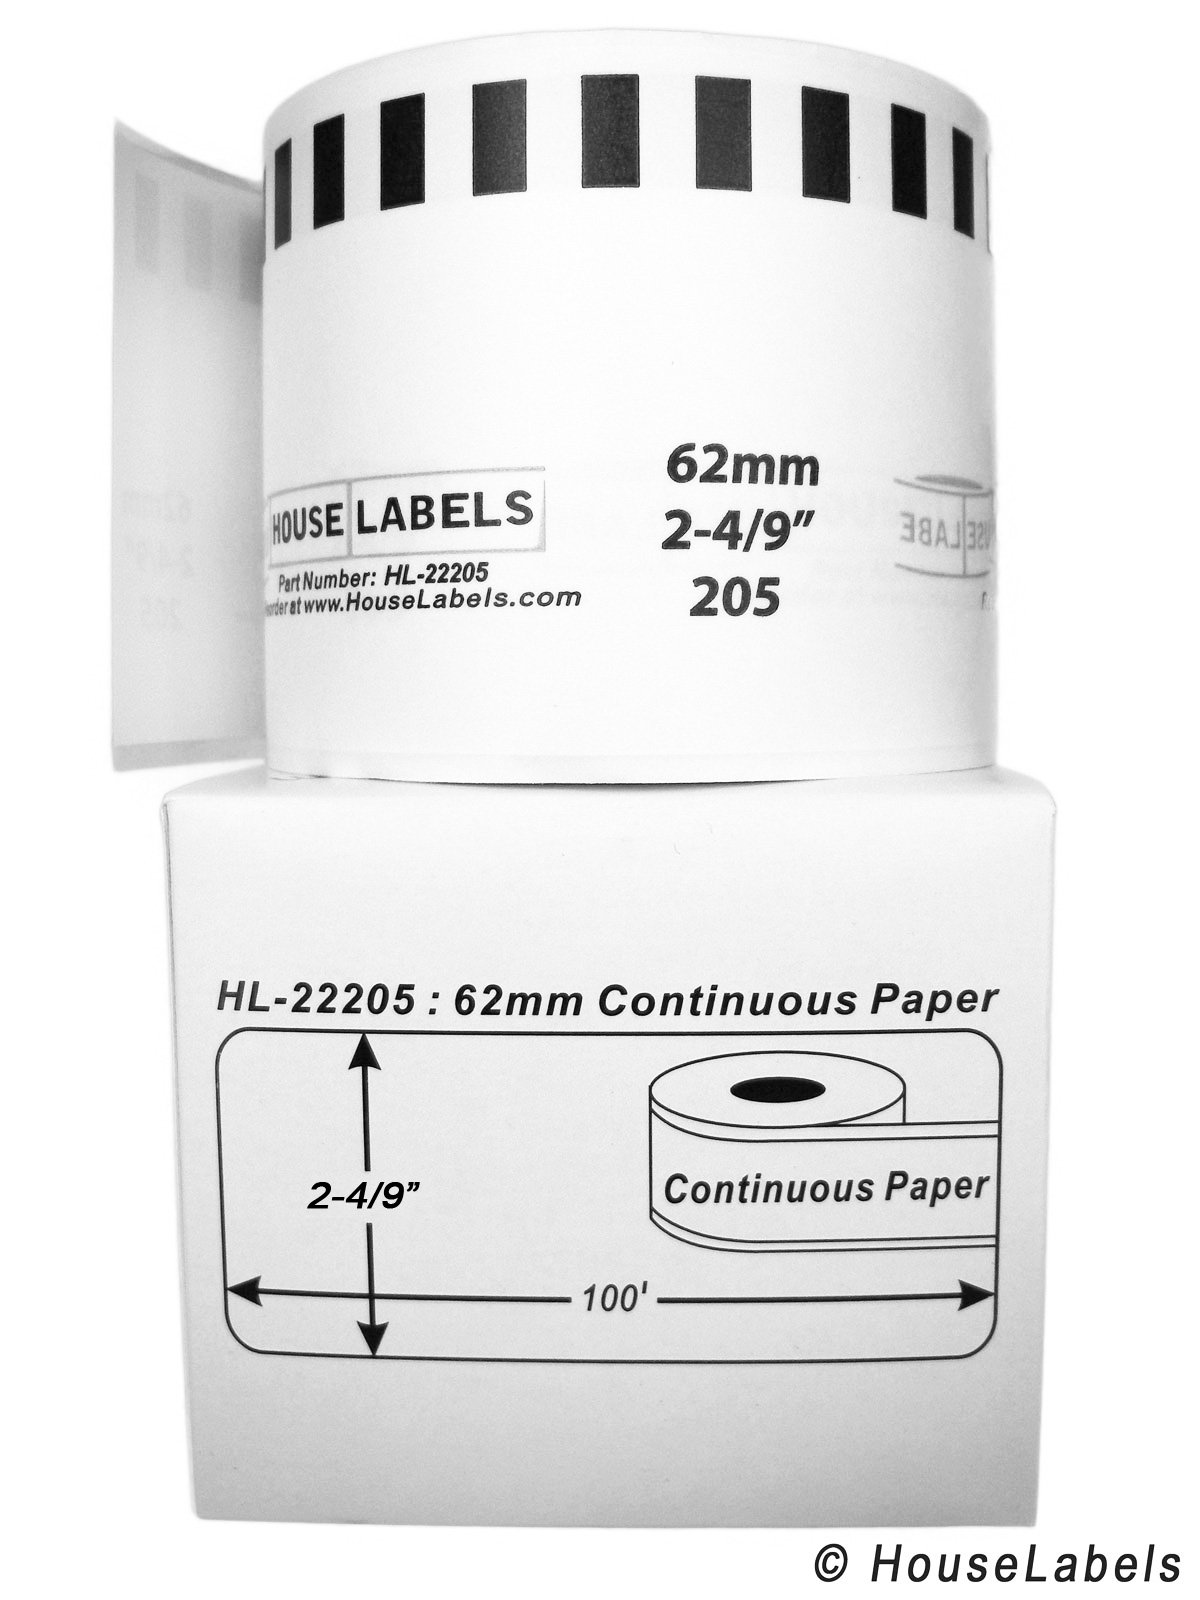 50 Rolls; Continuous Paper, HouseLabels Compatible with Brother DK-2205 Continuous Paper Labels (2-4/9'' x 100'; 62mm30.48m) - BPA Free! by HouseLabels